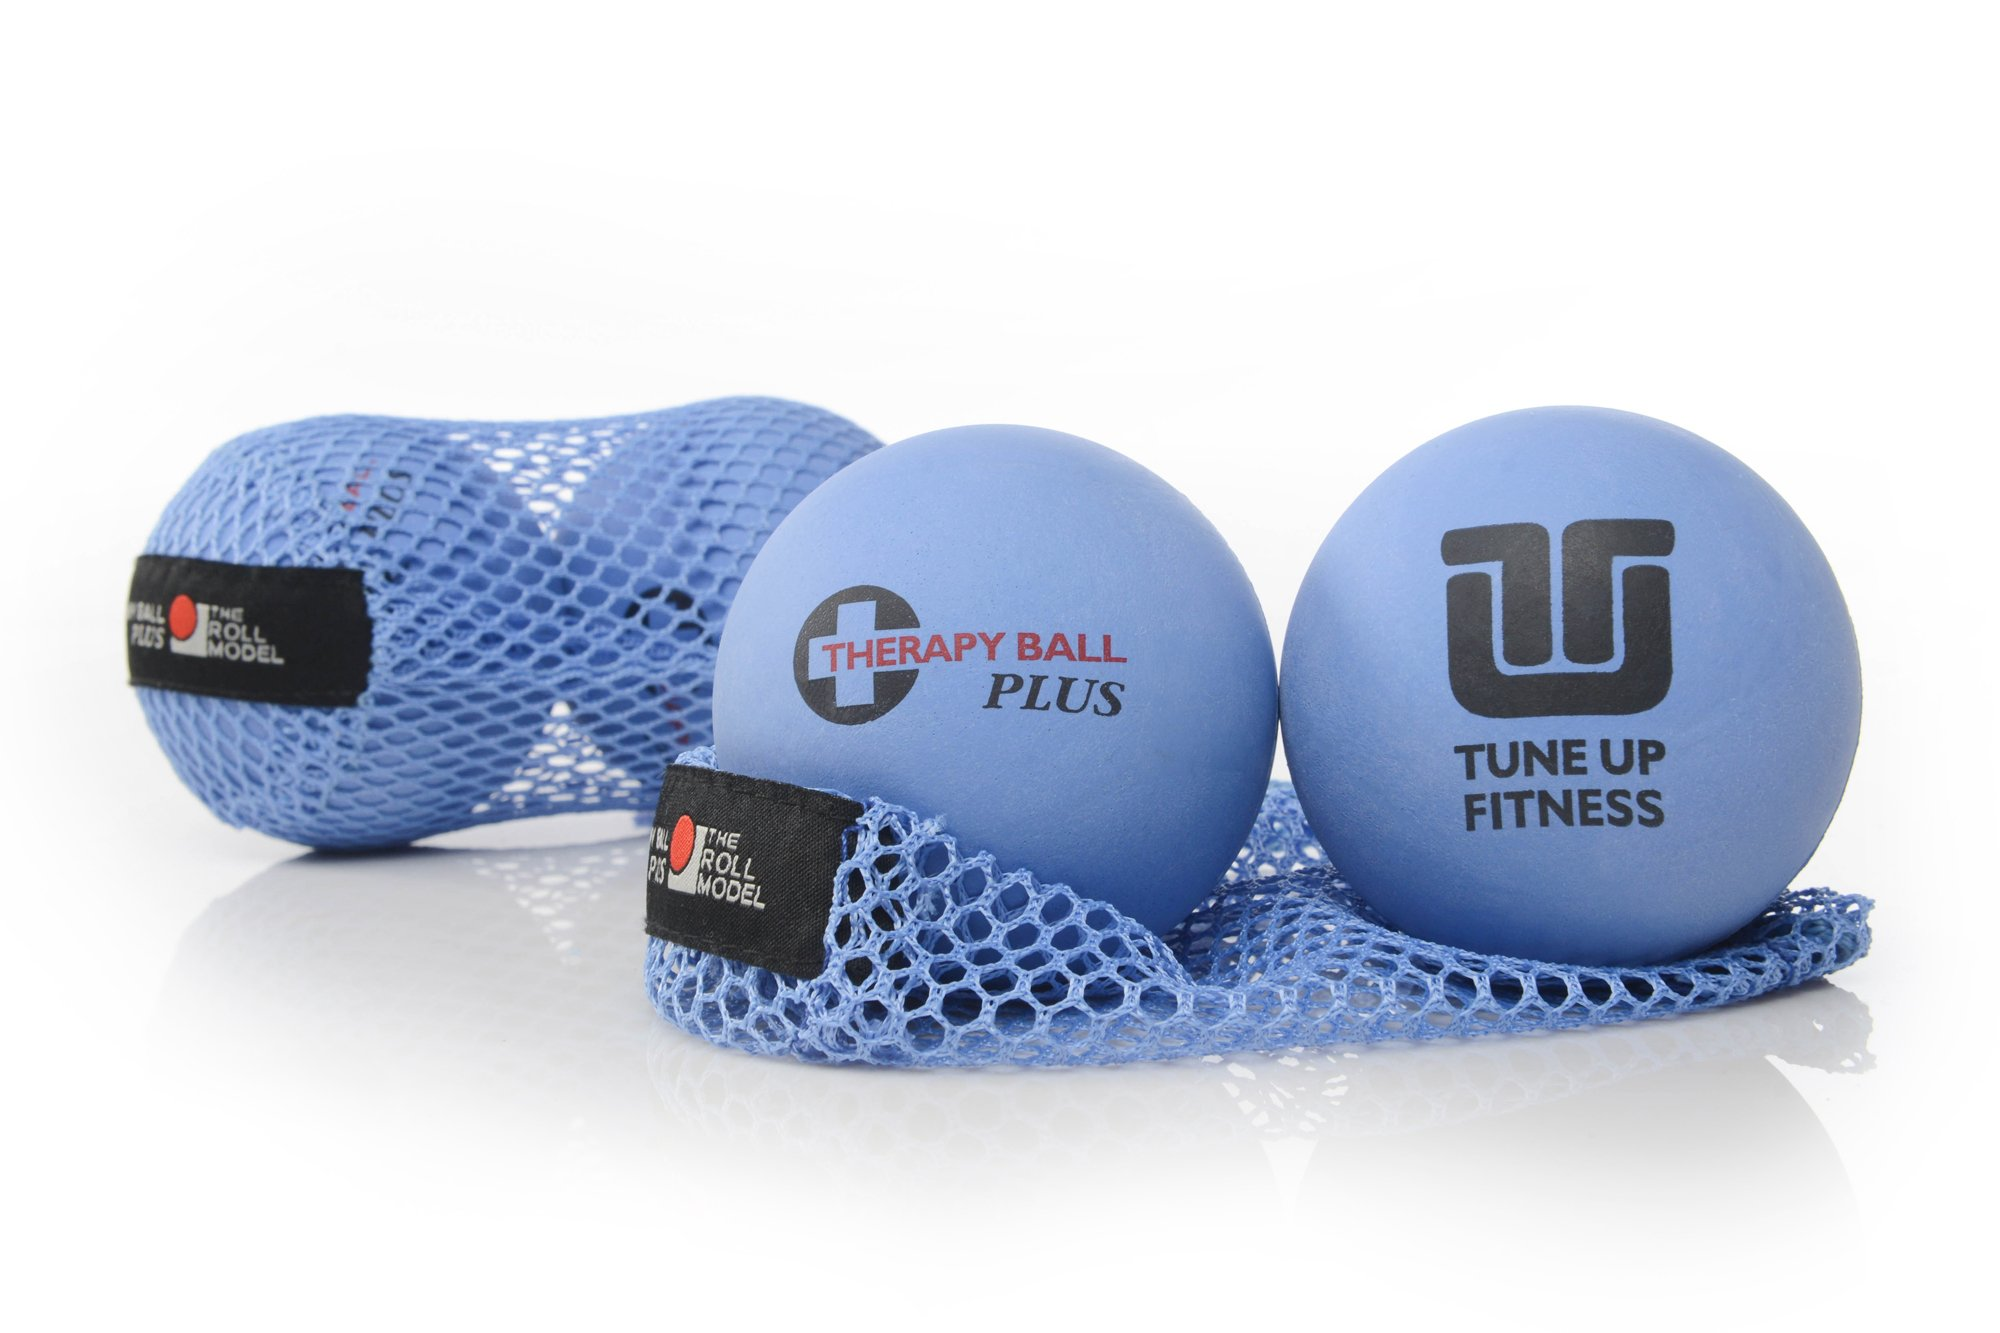 Tune Up Fitness Therapy Balls